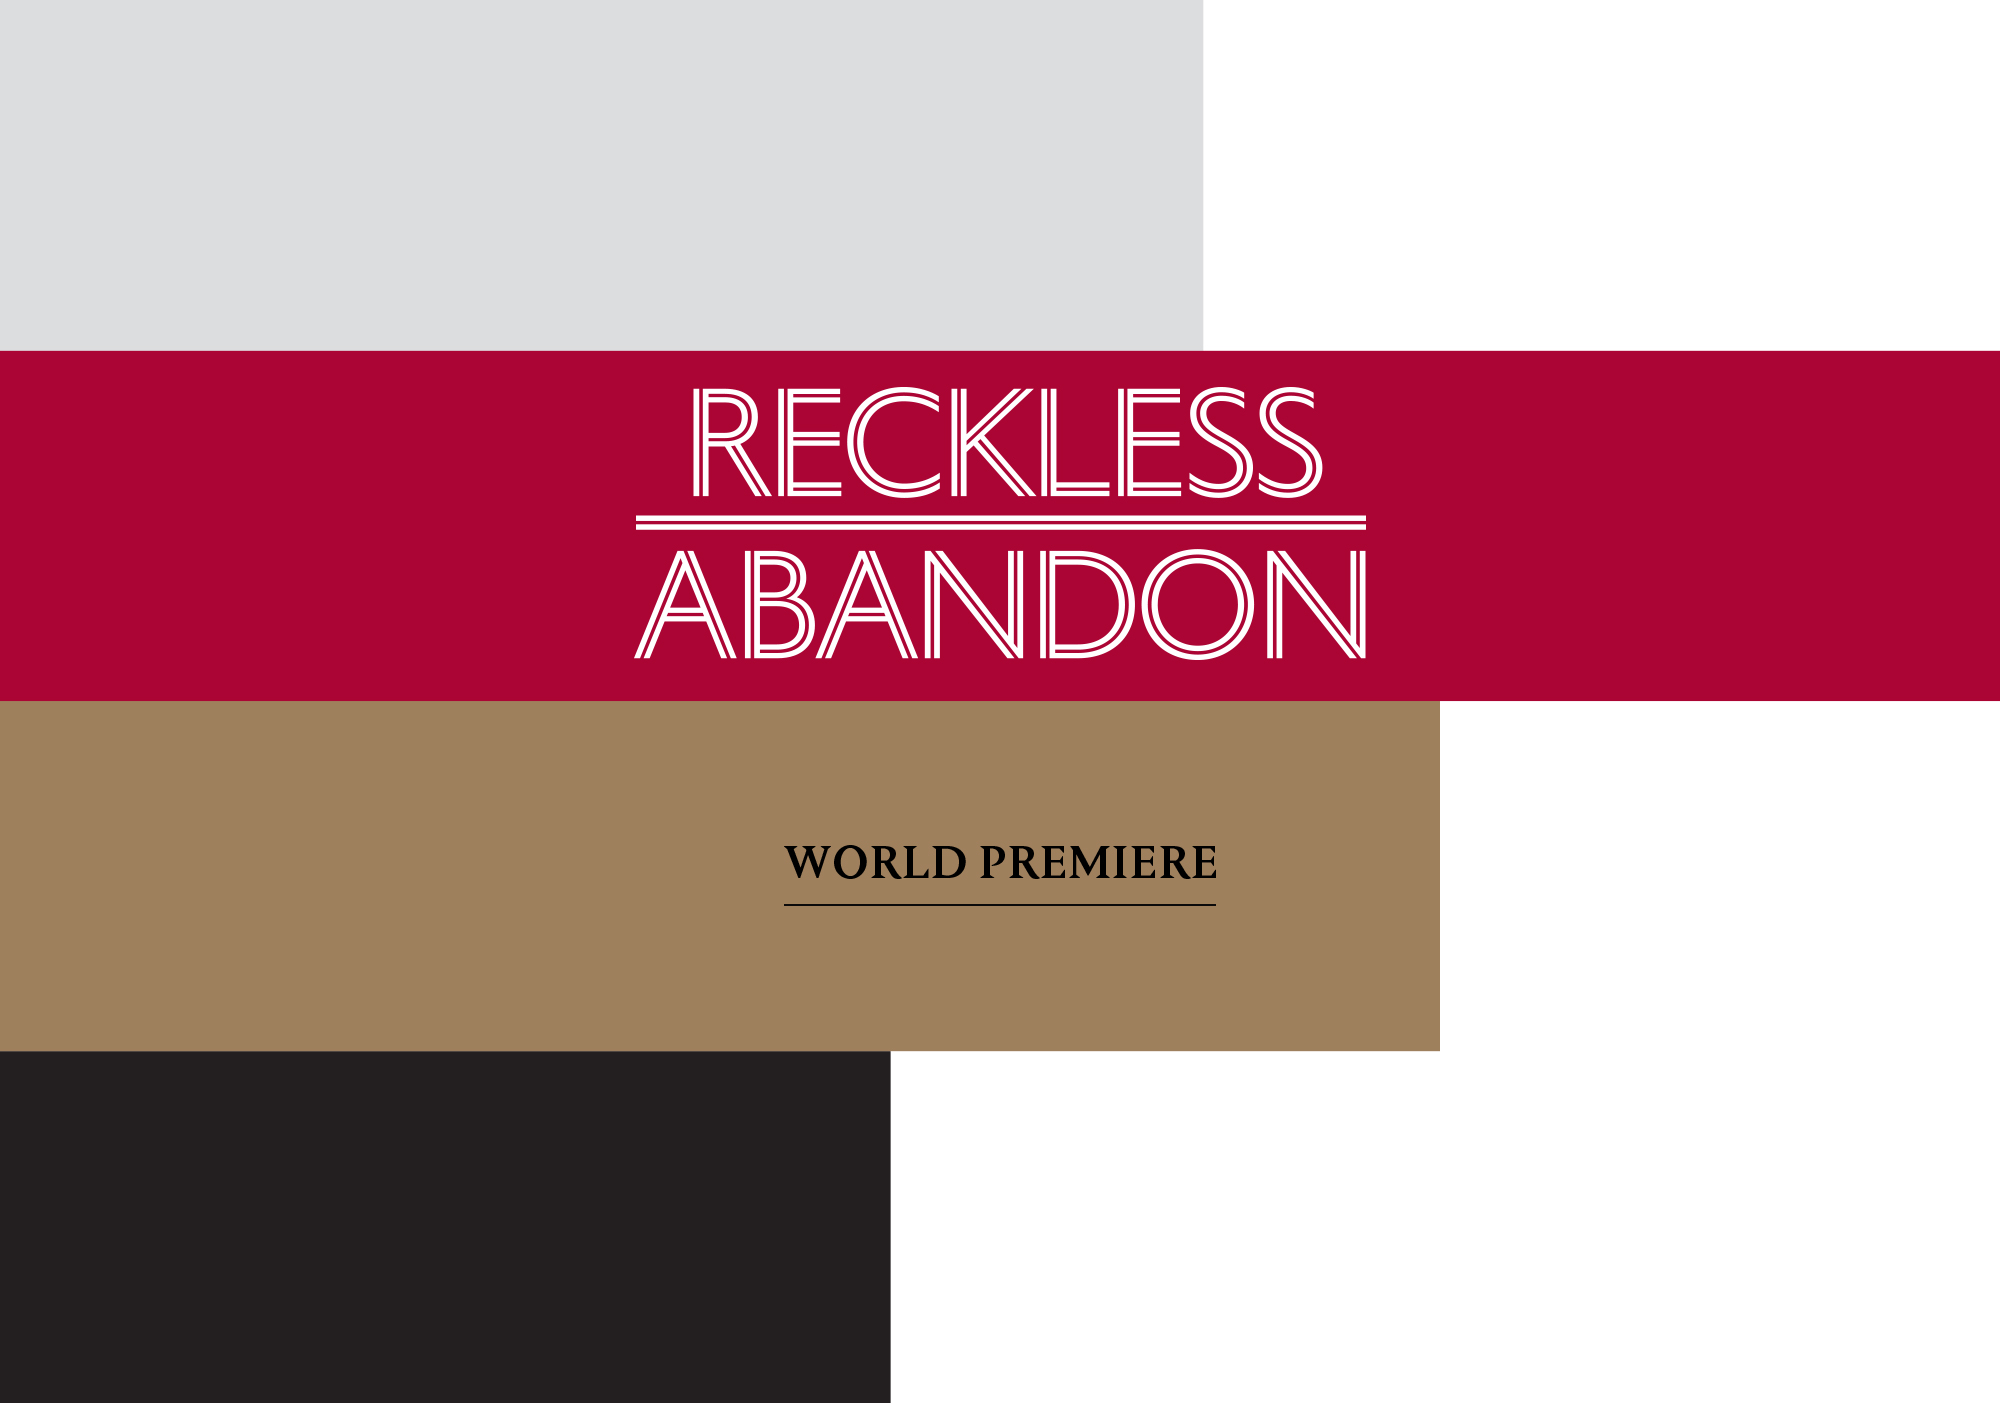 Bode Merrill, Reckless Abandon